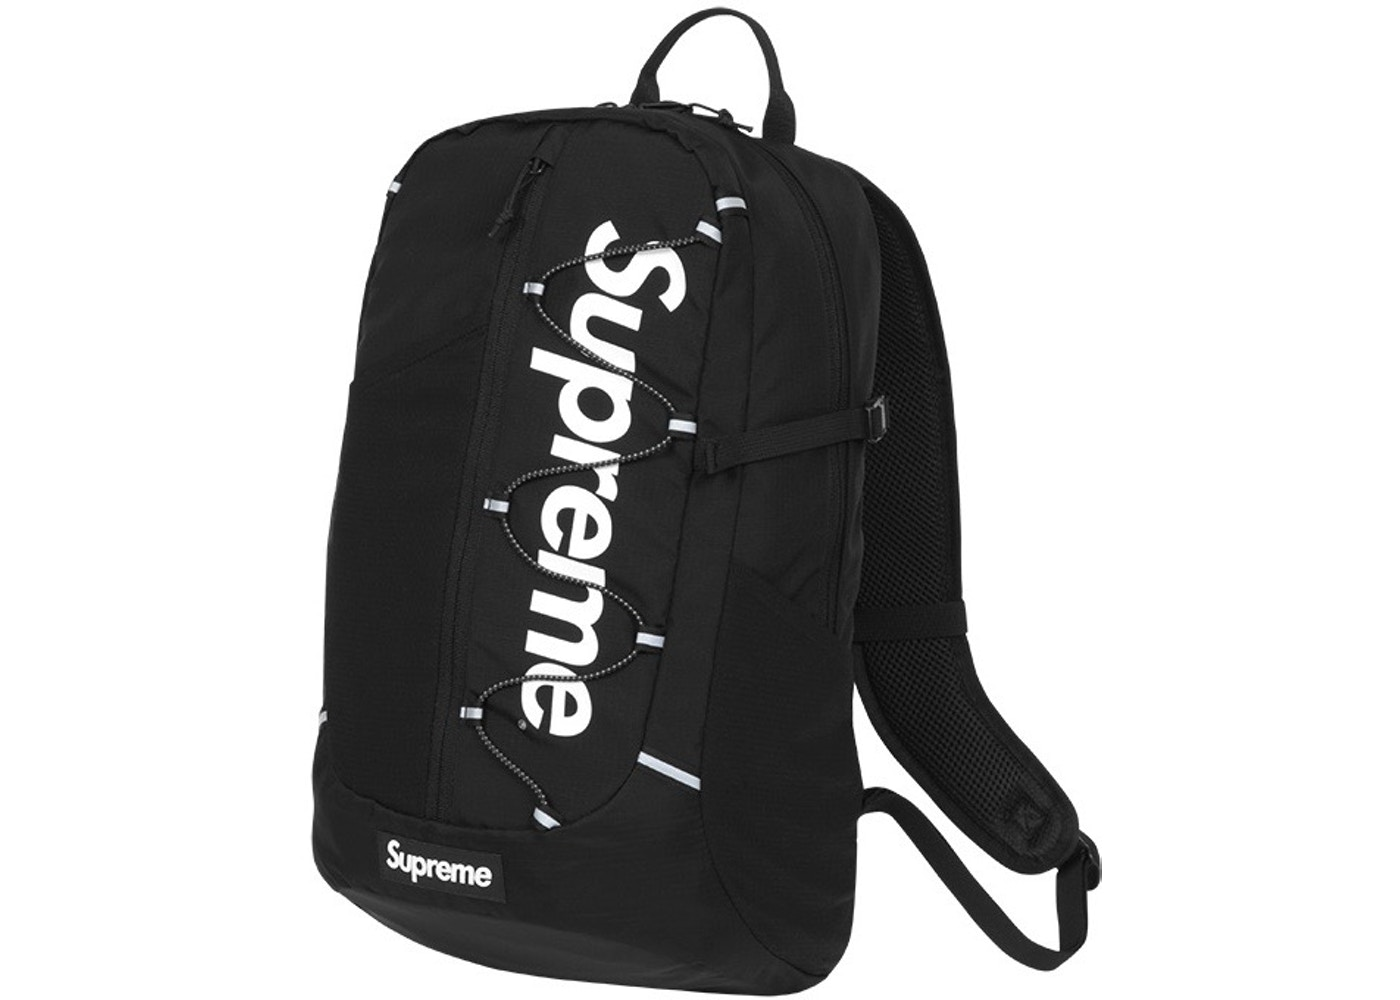 a491687e4934 Streetwear - Supreme Bags - Average Sale Price